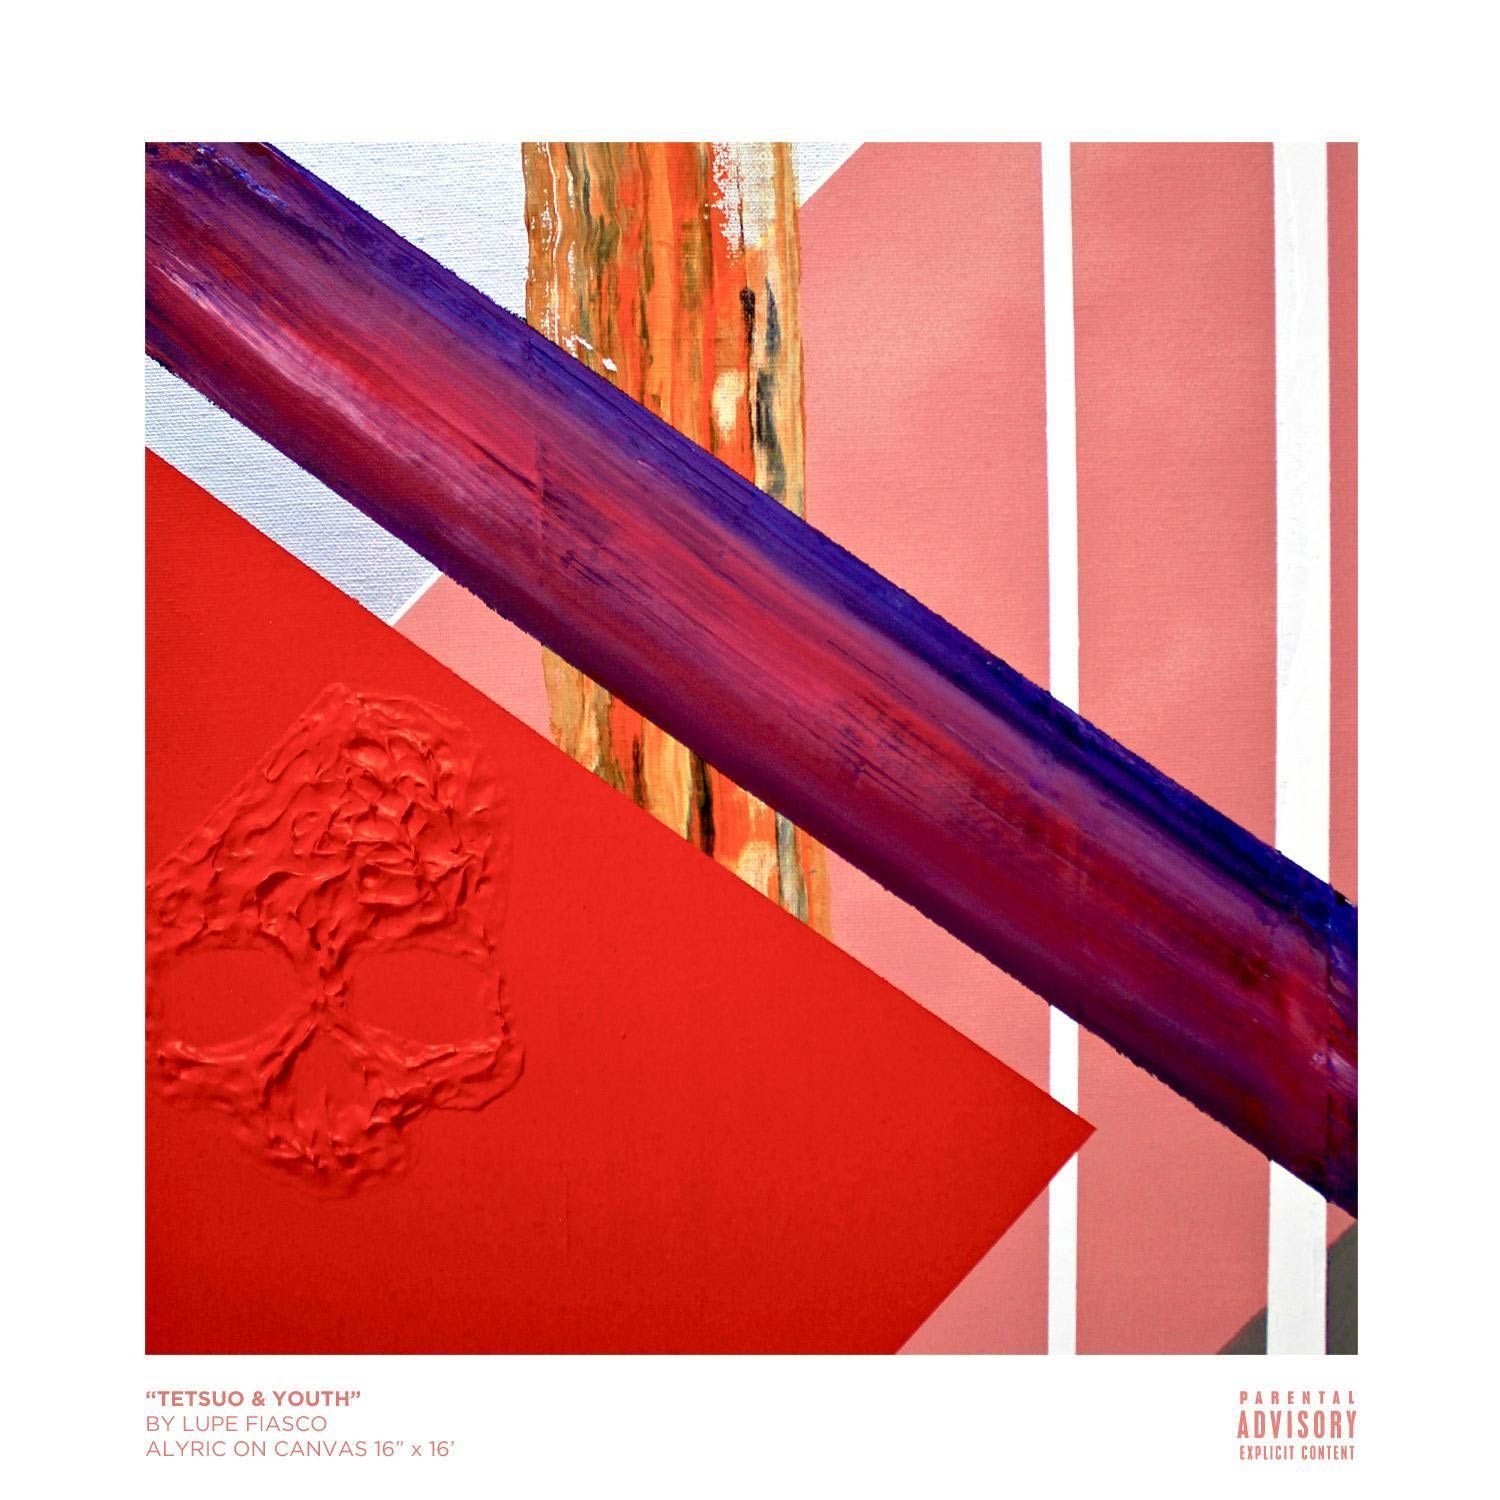 Lupe Fiasco: Tetsuo and youth - spotify:album:7F58zK8t8whSFjX5X09d28